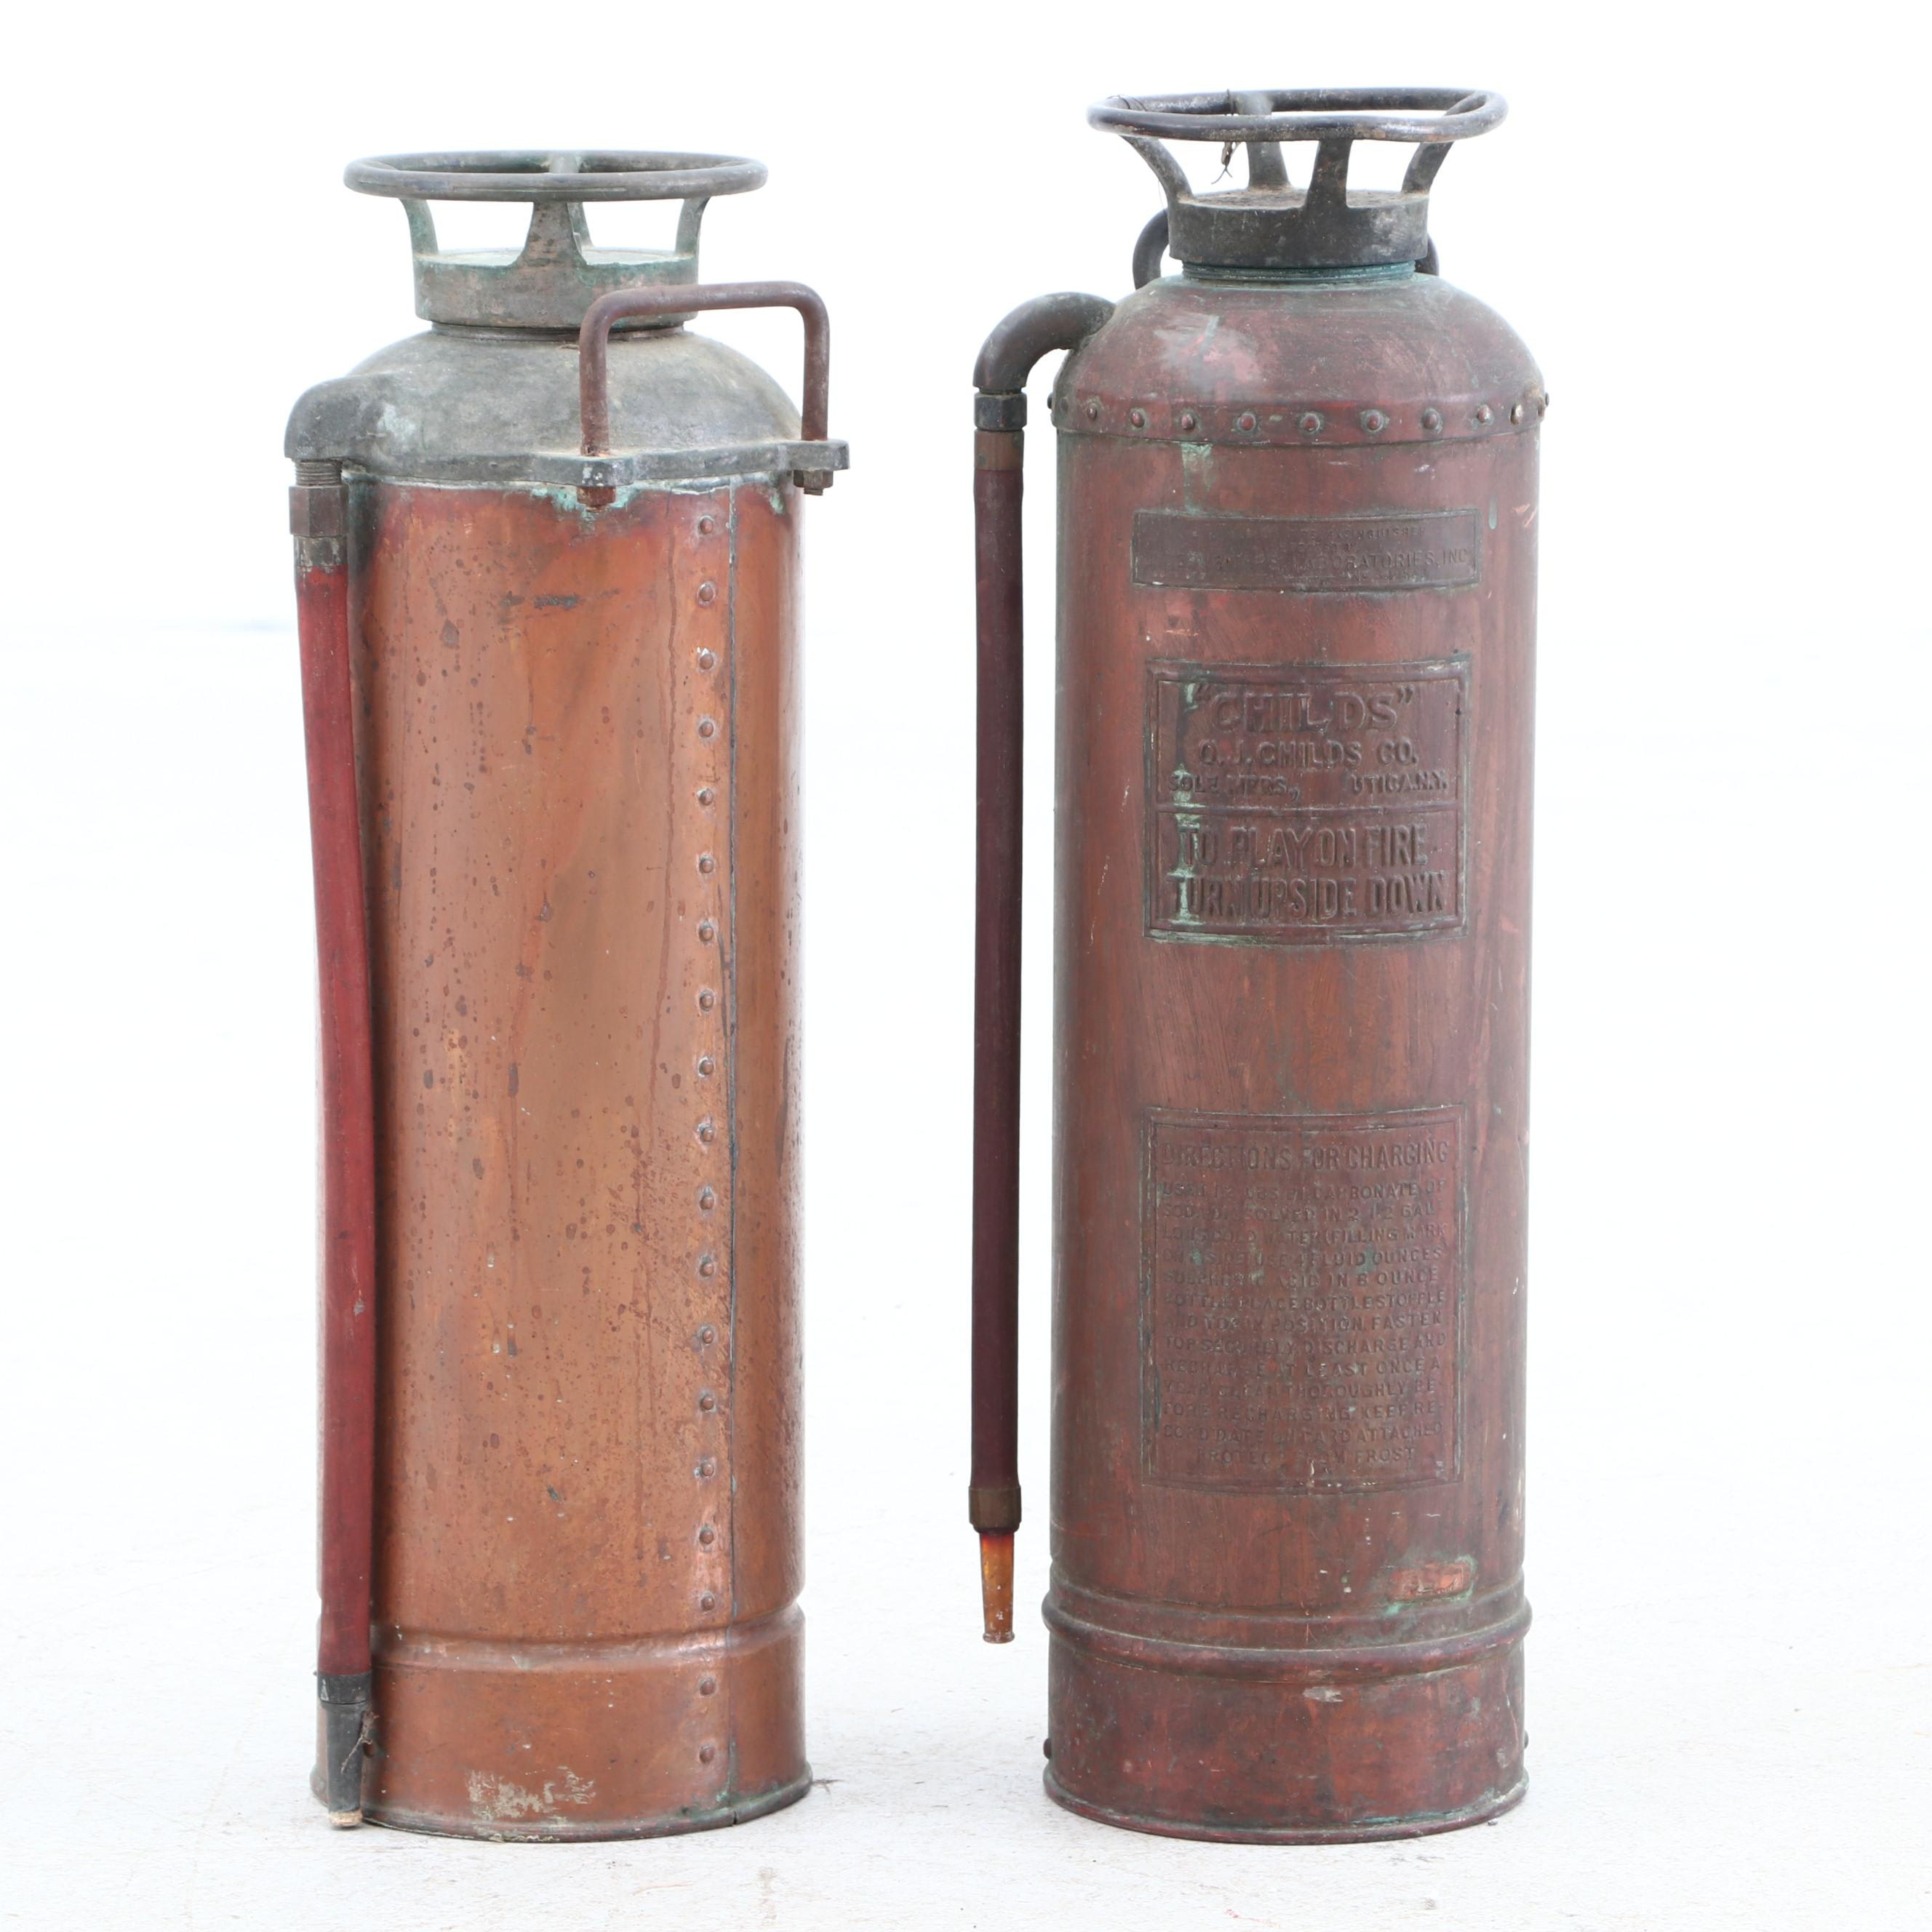 Vintage Fire Extinguishers Including one from Child's